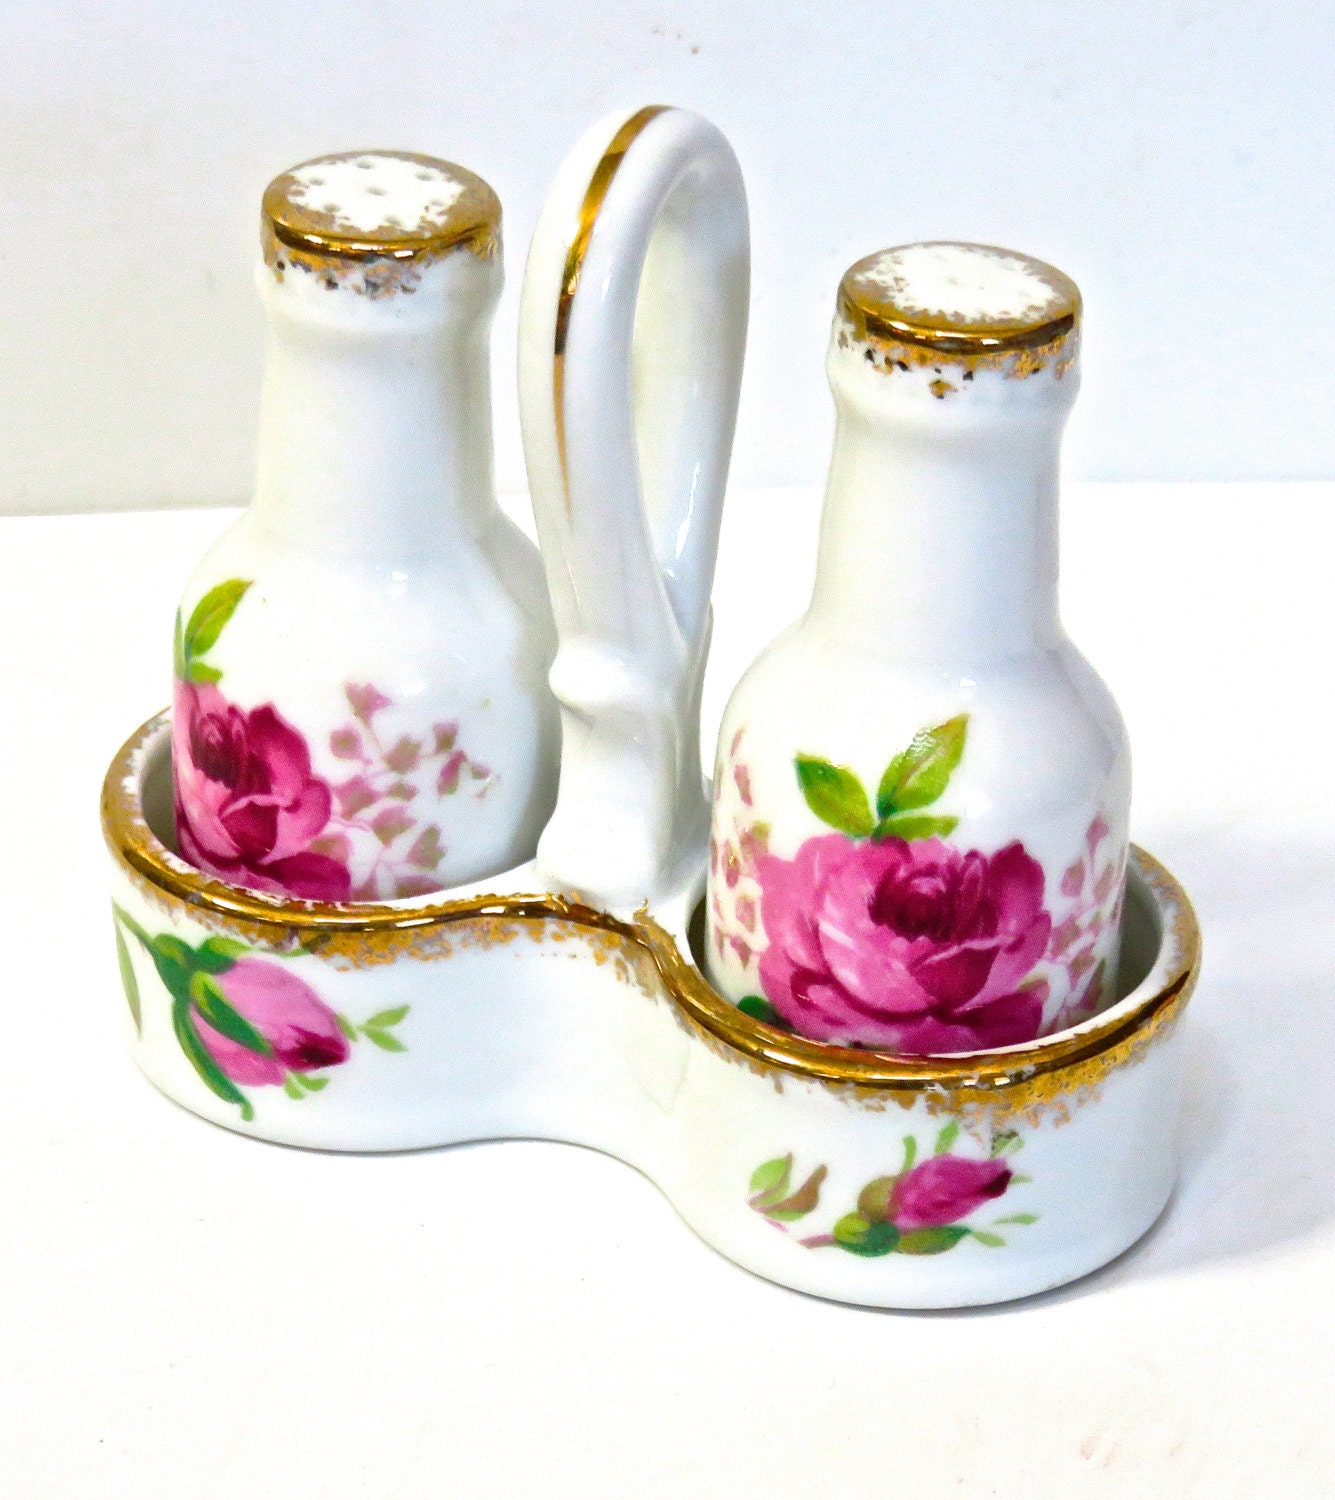 Porcelain Salt And Pepper Shakers In Caddy Made In Japan